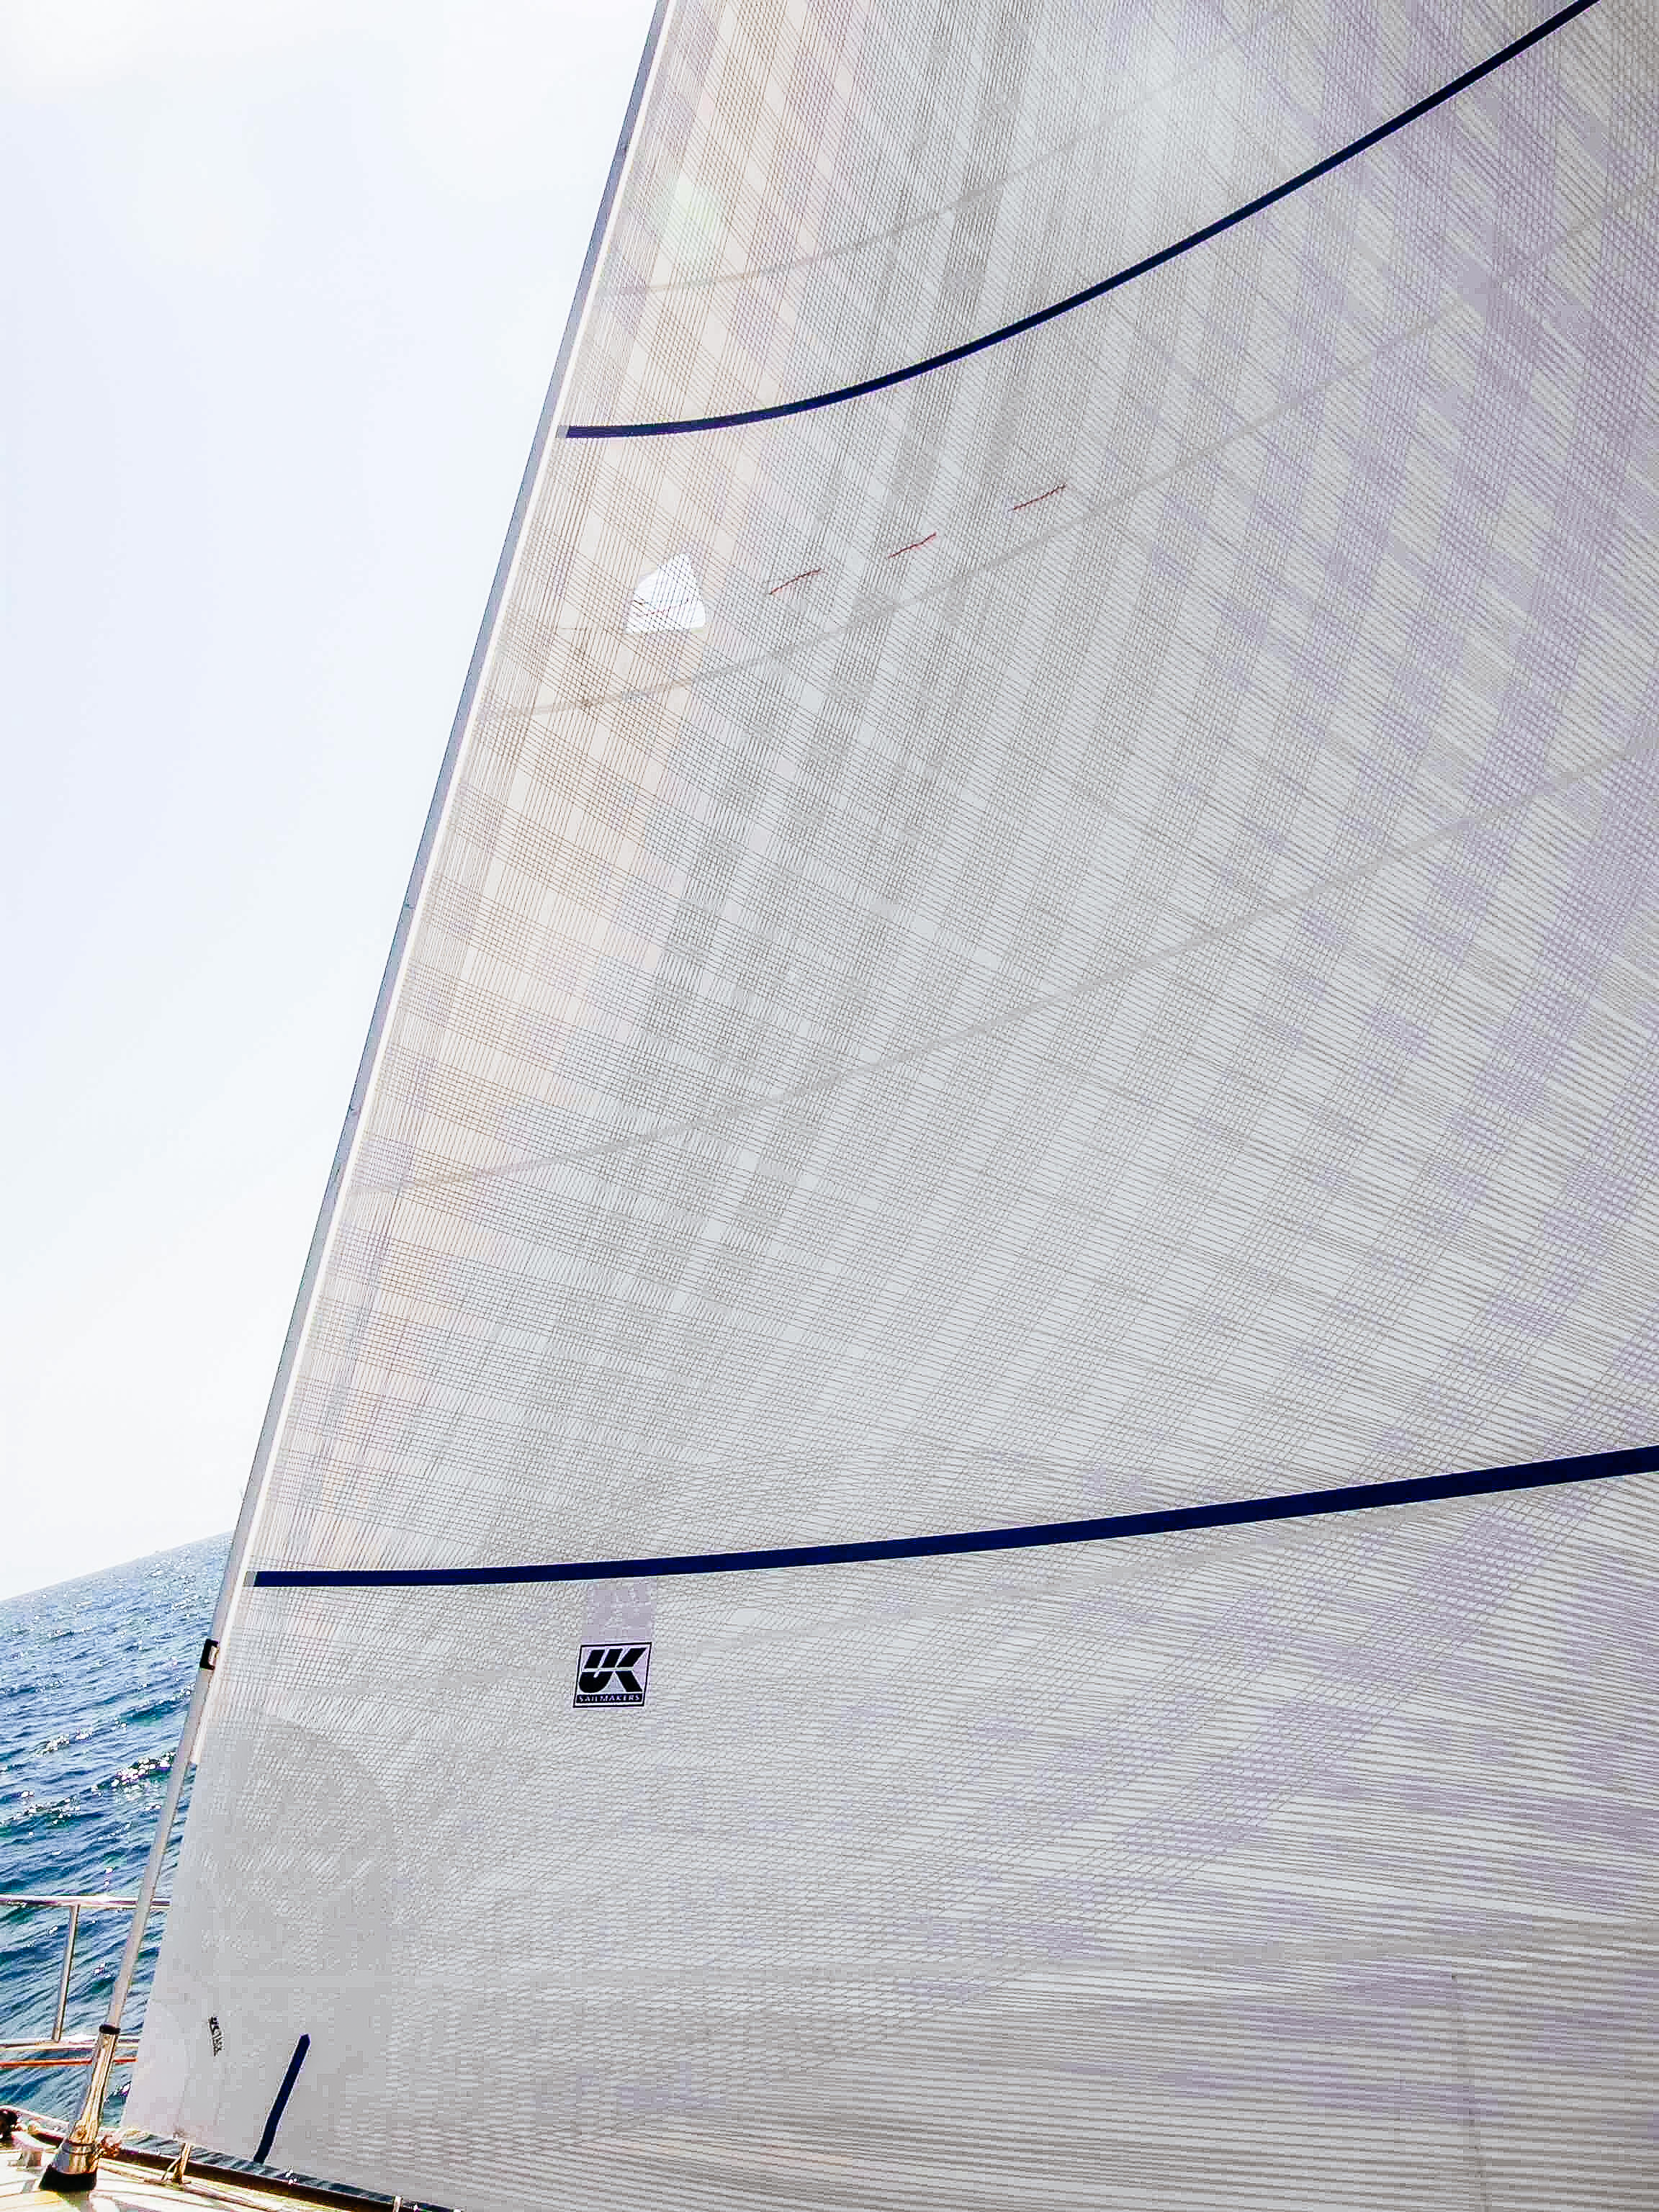 A Davidson 52 X-Drive Carbon/Spectra genoa with a layer of taffeta applied over the tapes. The second side of the sail material came from Dimension Polyant with a taffeta side.